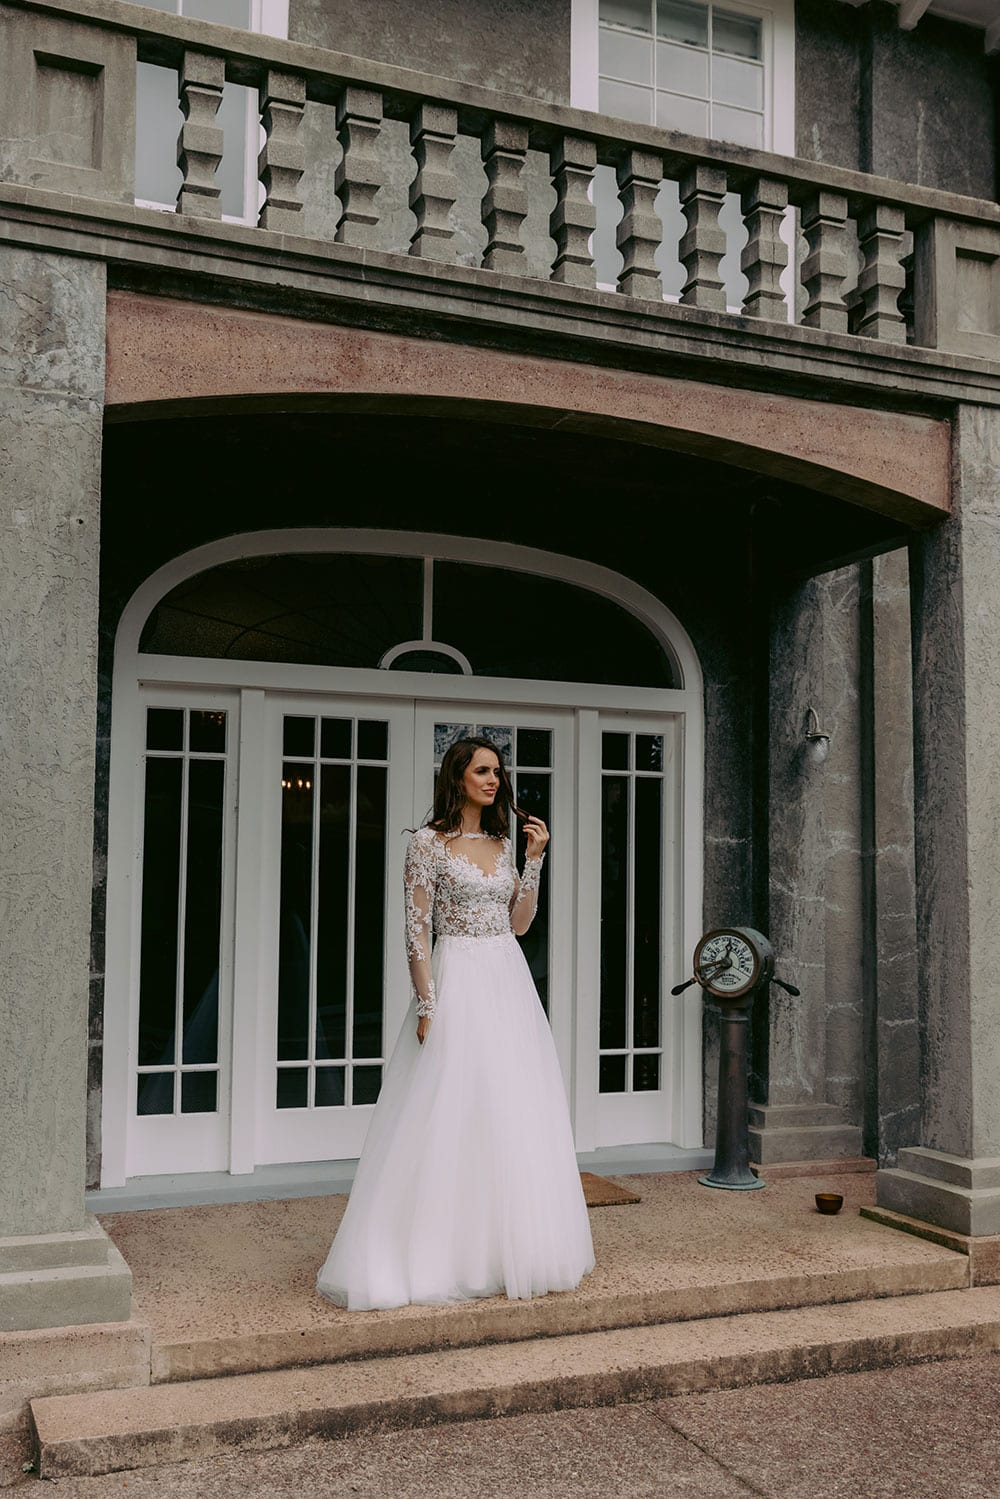 Maia Wedding gown from Vinka Design - This feminine & romantic wedding dress features beautiful pearl & bead embroidery over 3D lace. Long sleeves with pearl buttons, illusion neckline and skirt of dreamy layers of soft tulle. Model wearing gown showing full length of dress detail outside heritage building in Clevedon, near Auckland.